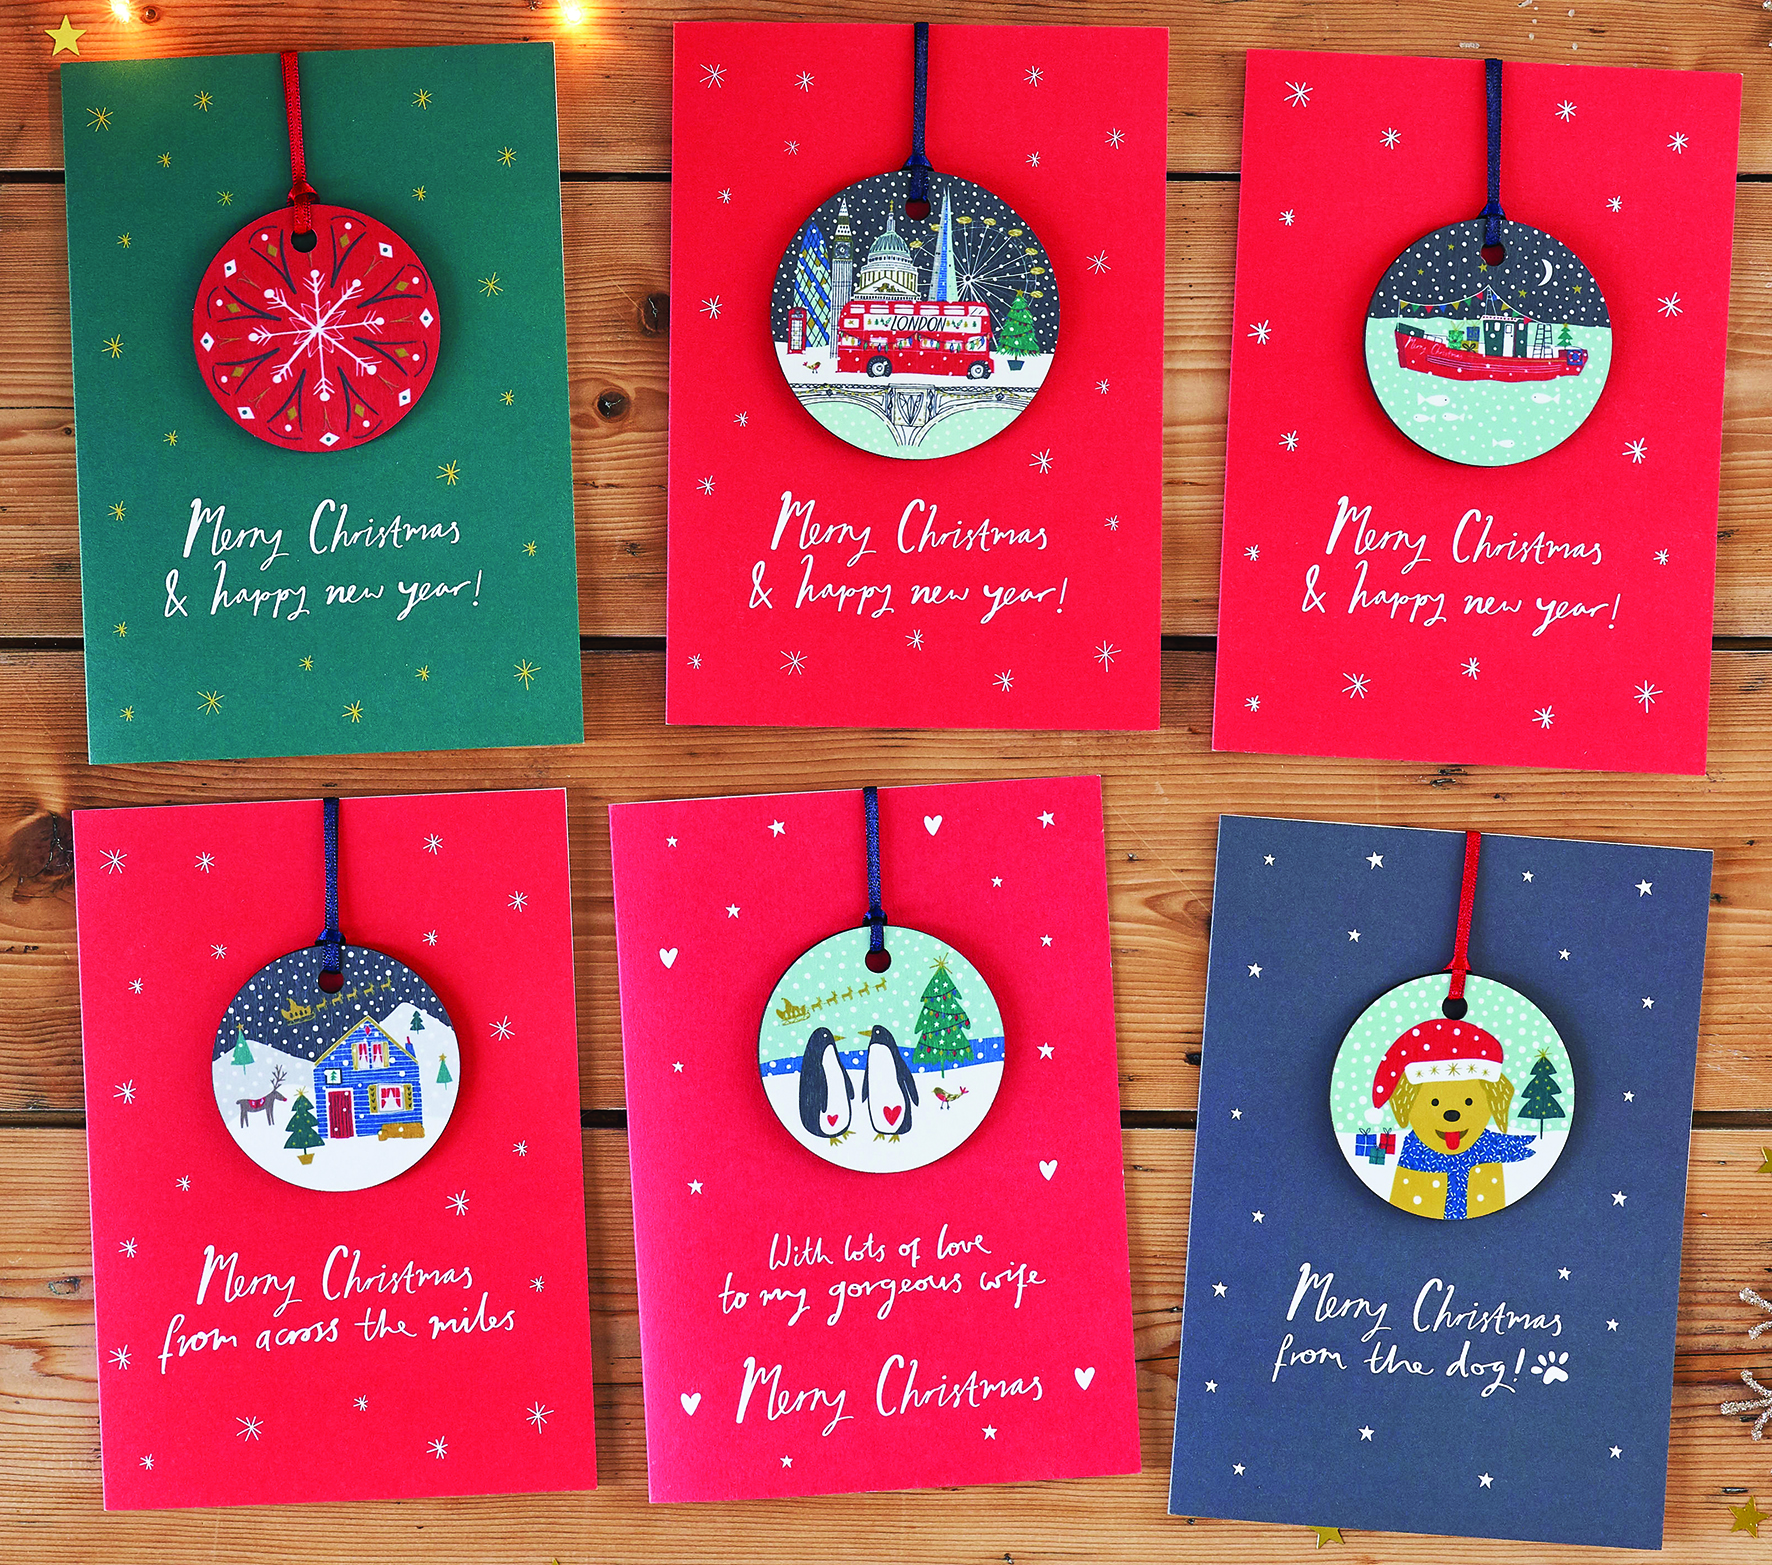 Above: Some of the Jessica Hogarth Christmas Baubles cards.